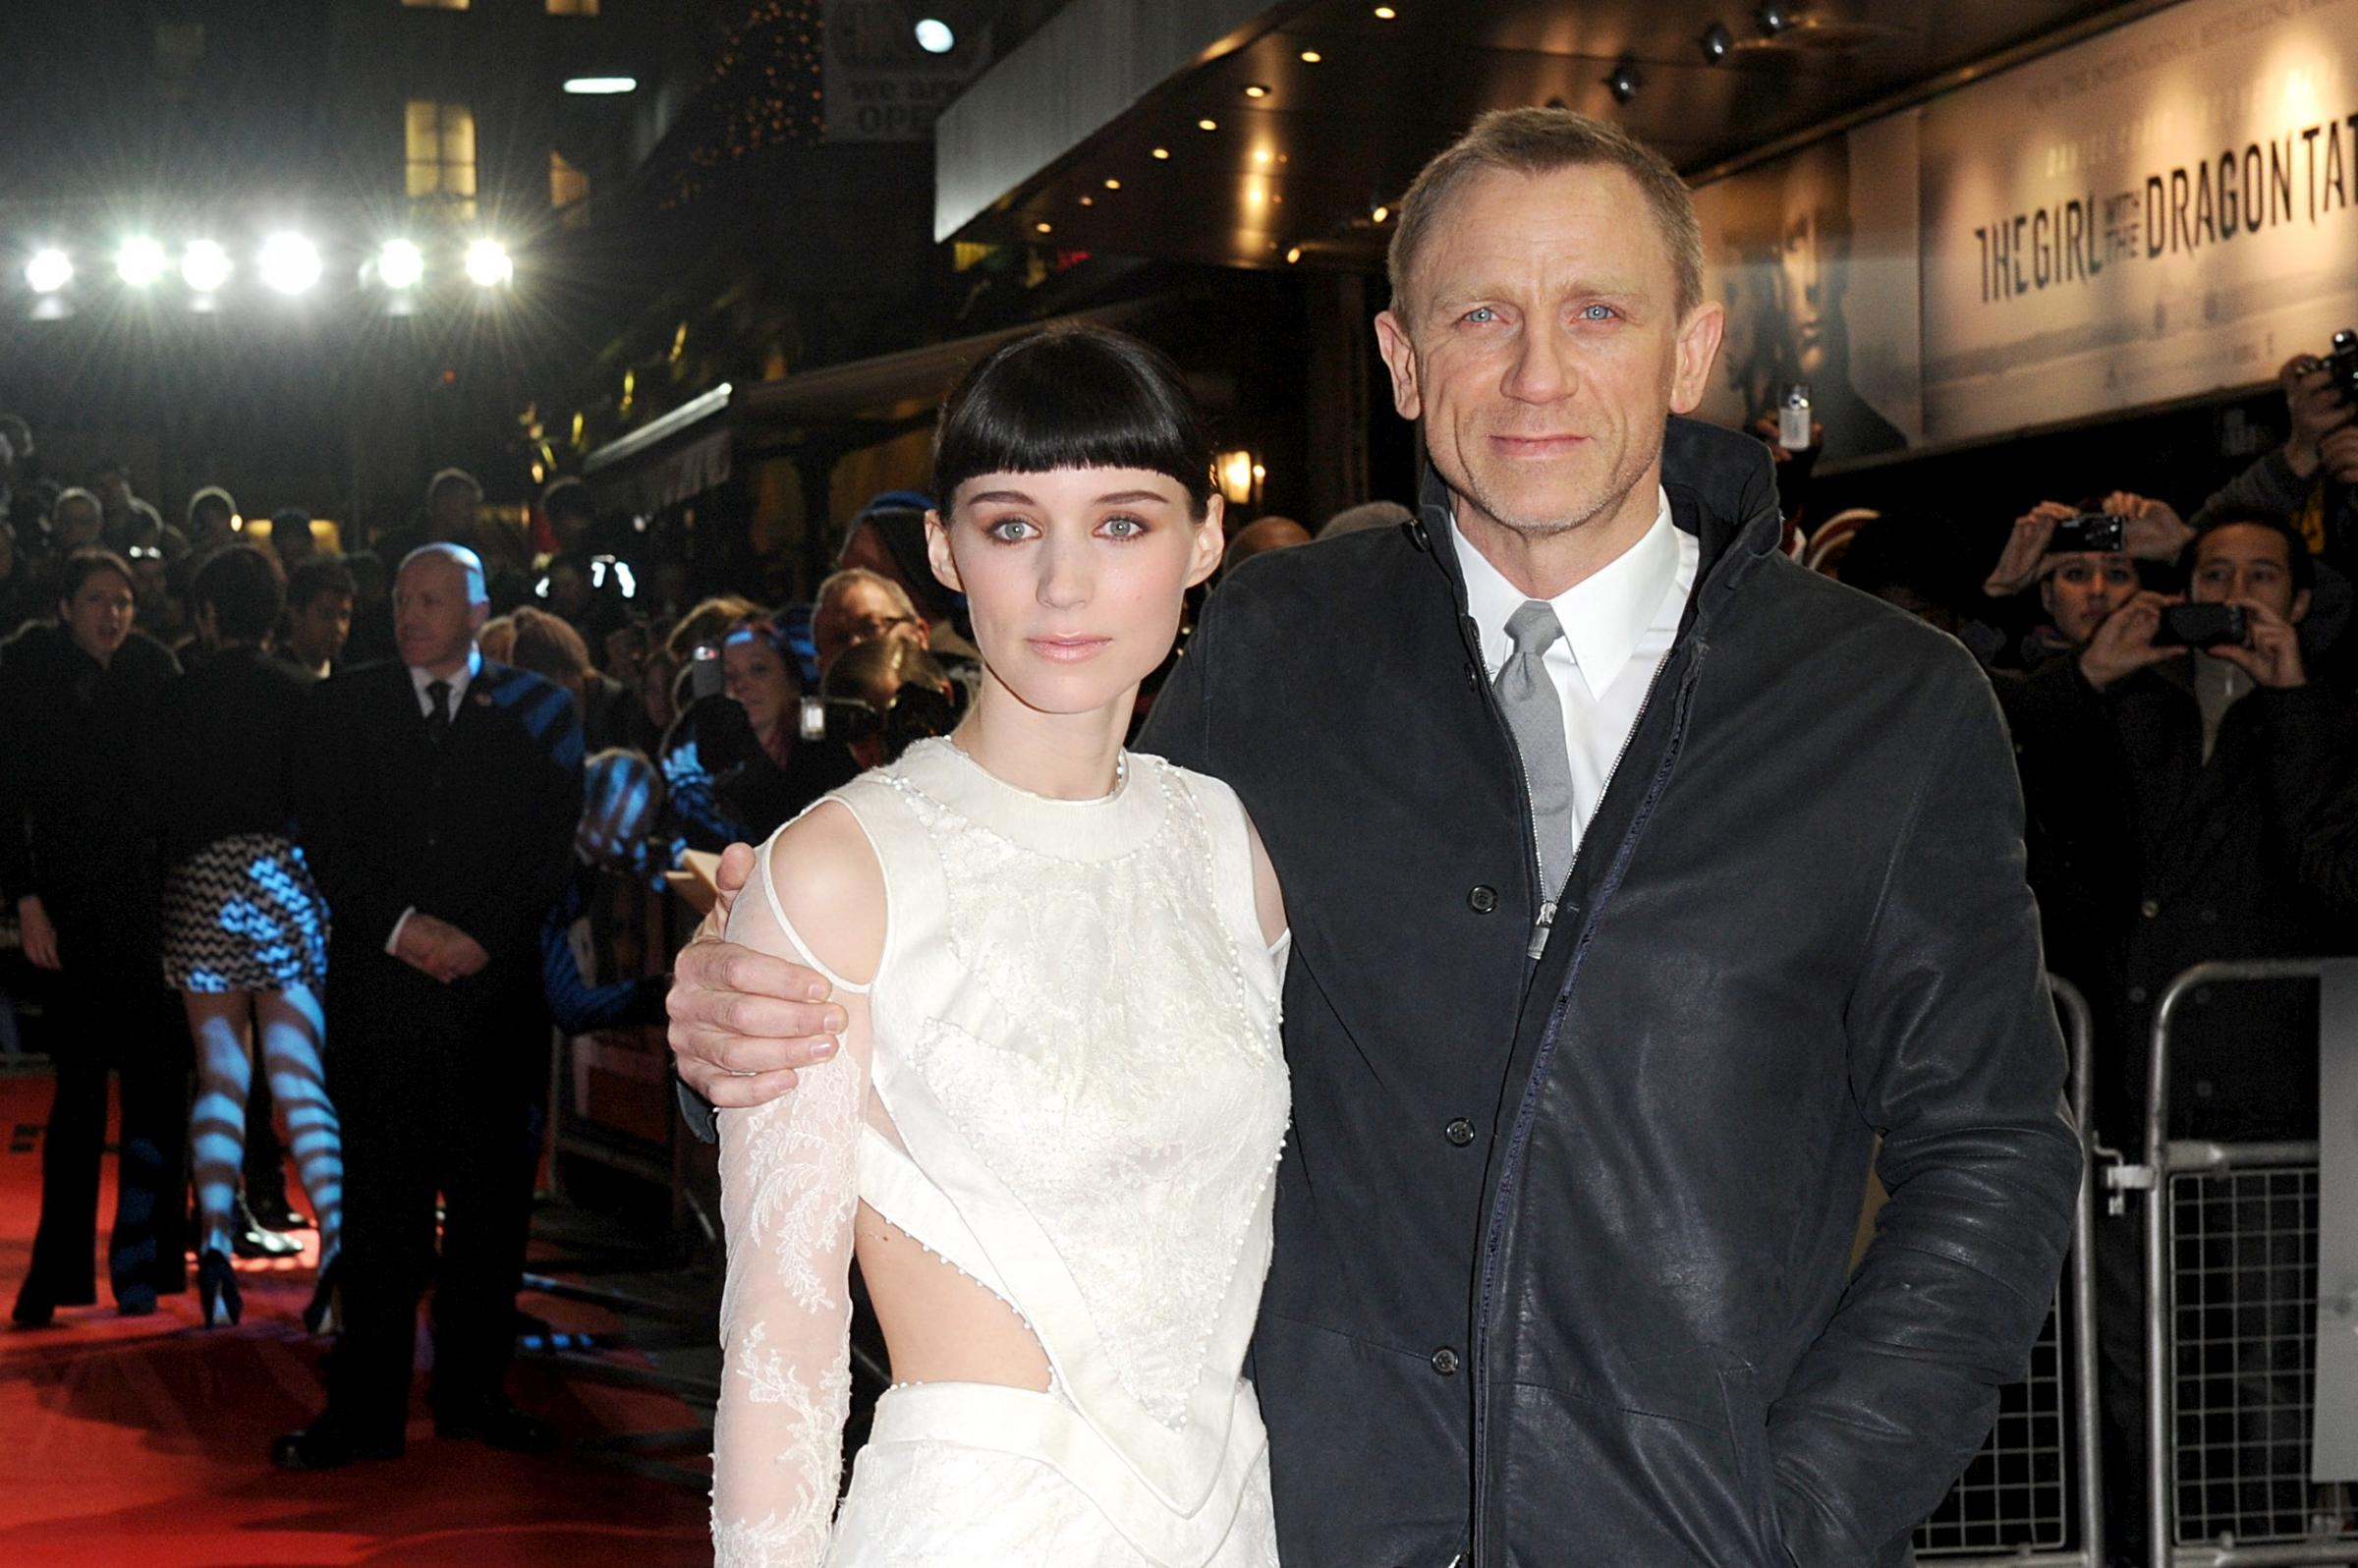 Rooney Mara and Daniel Craig out as new cast lined up for Girl With The Dragon Tattoo follow-up